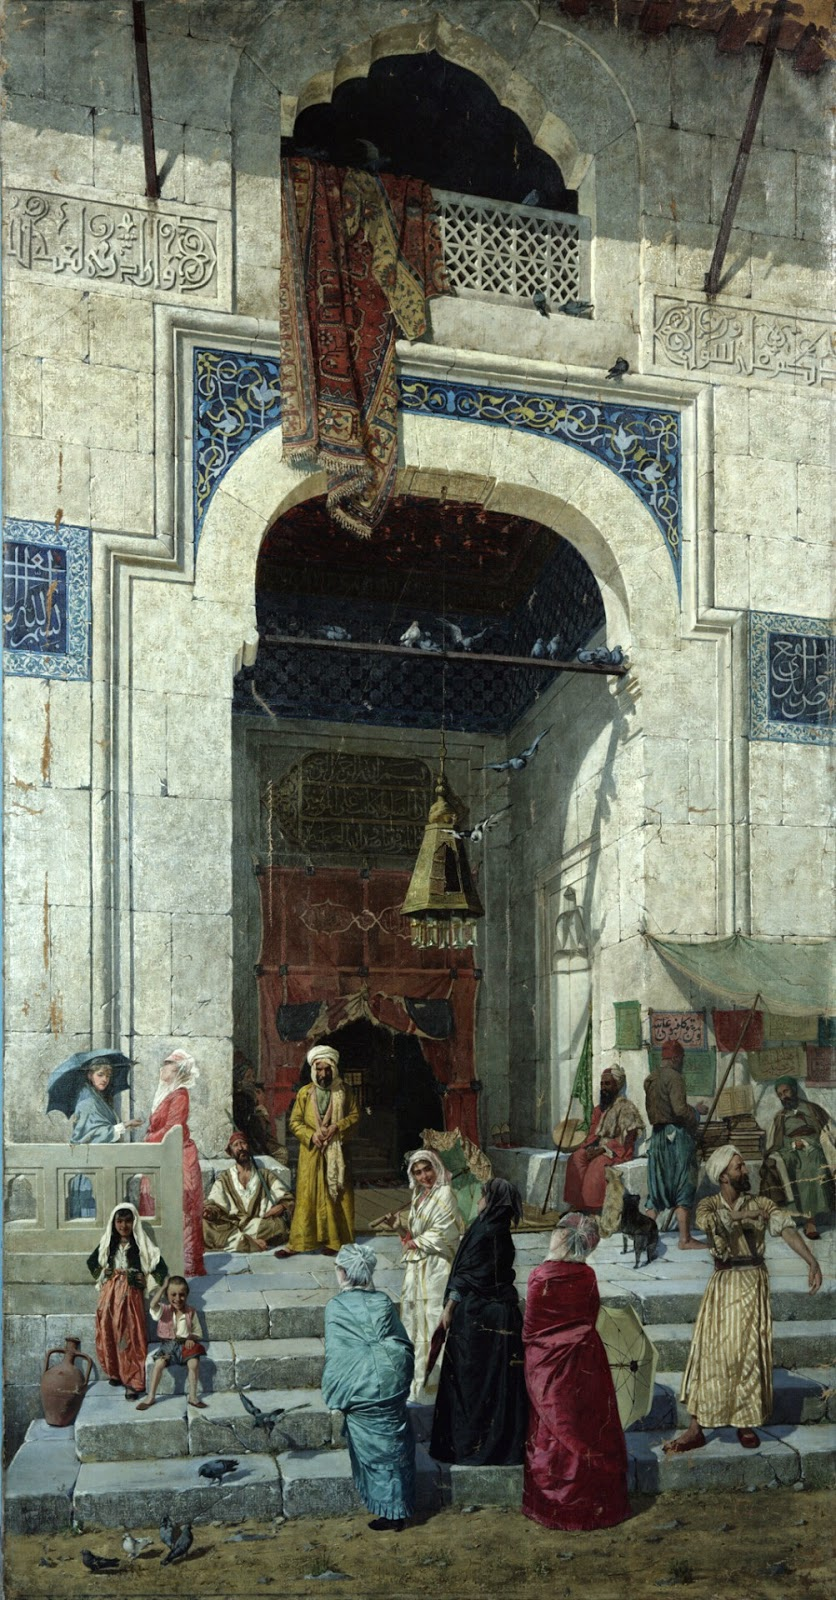 Osman Hamdi Bey - An Ottoman Empire Painter (1842-1910)